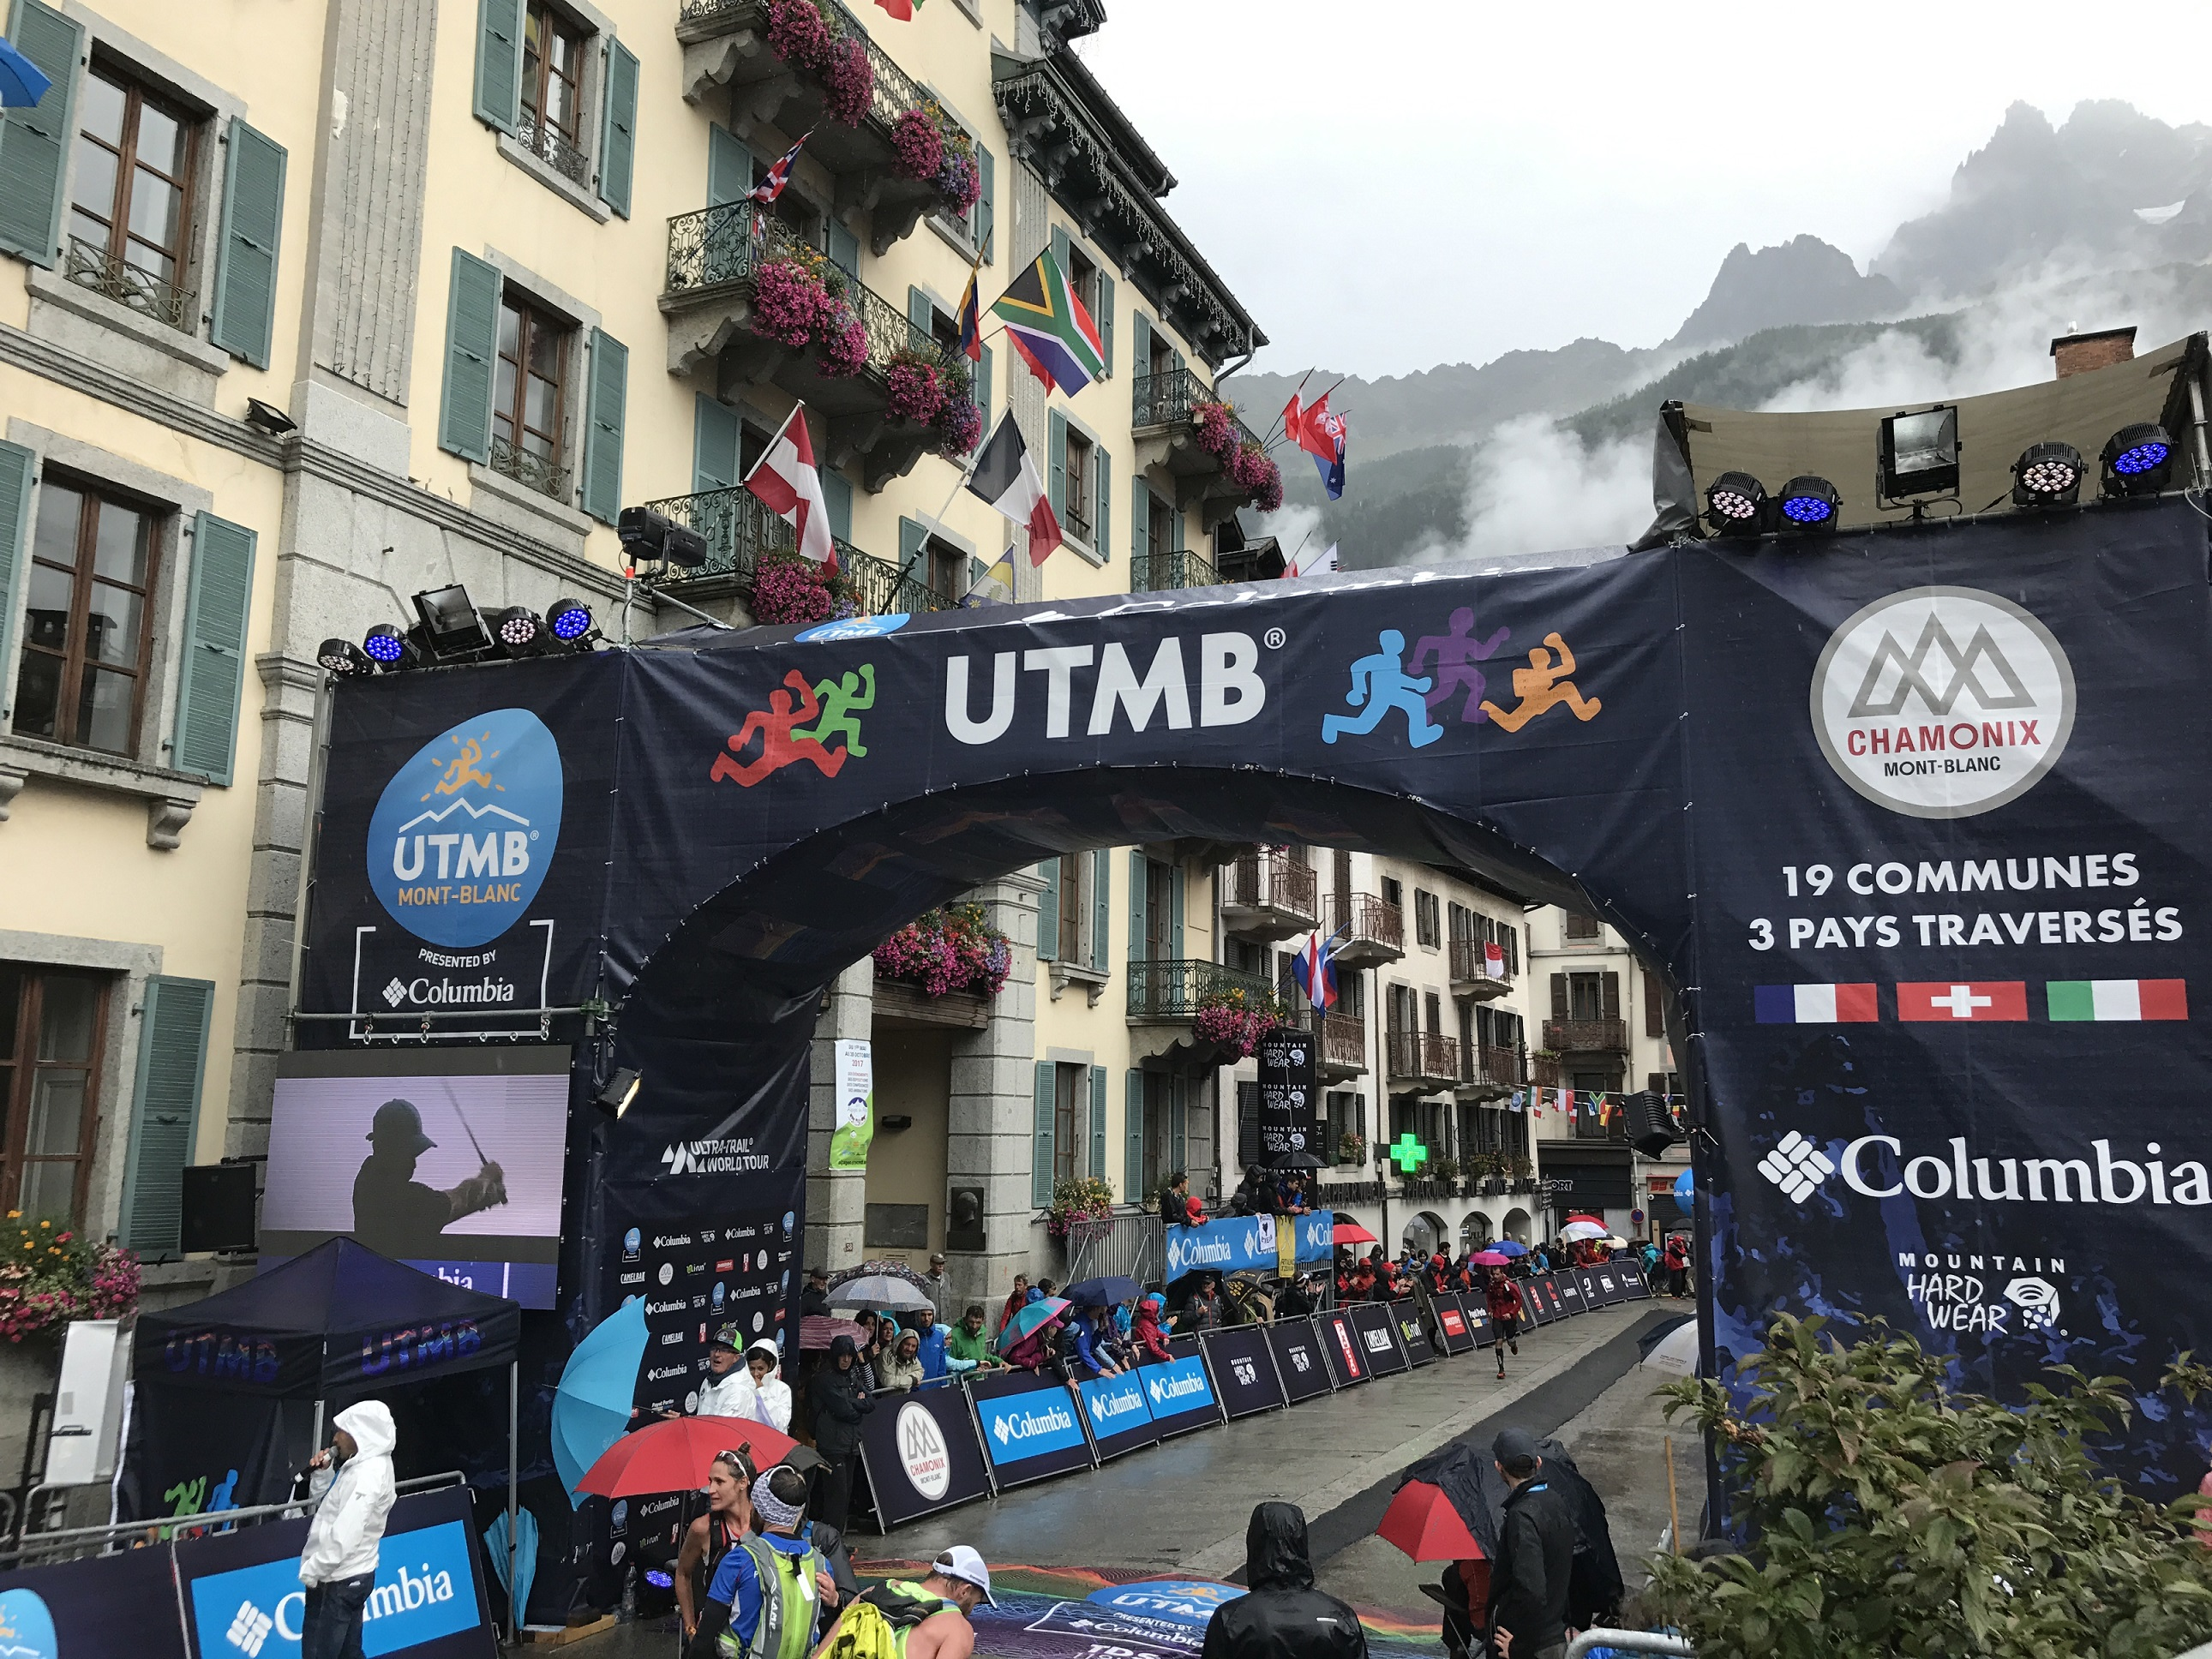 KELLER SPORTS AT THE UTMB 2017 PRESENTED BY COLUMBIA